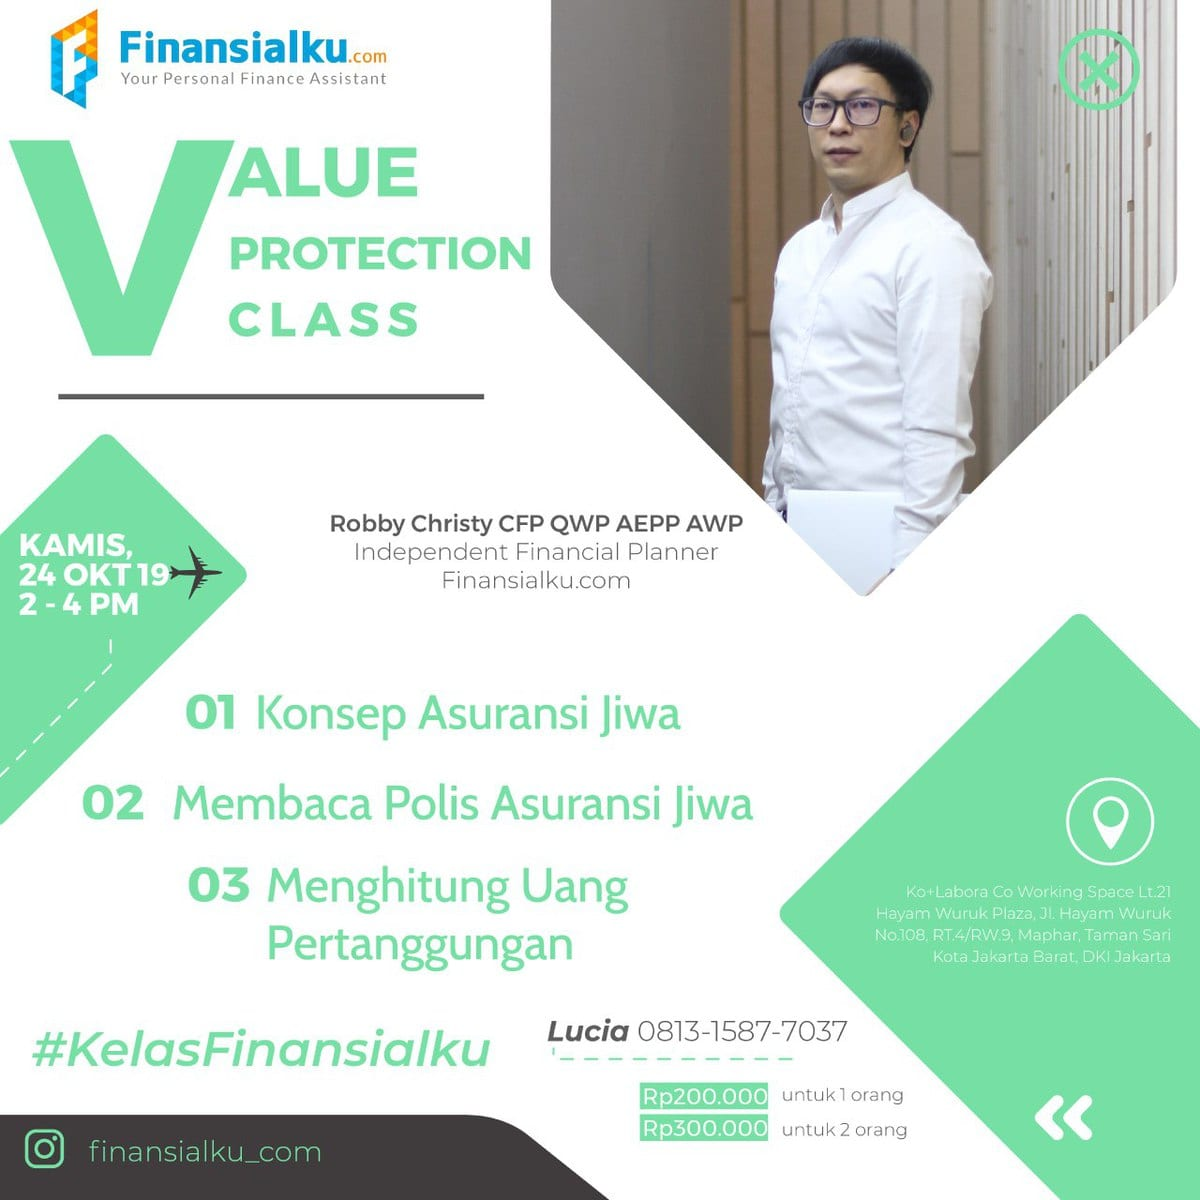 Value Protection Class 24 Okt 2019